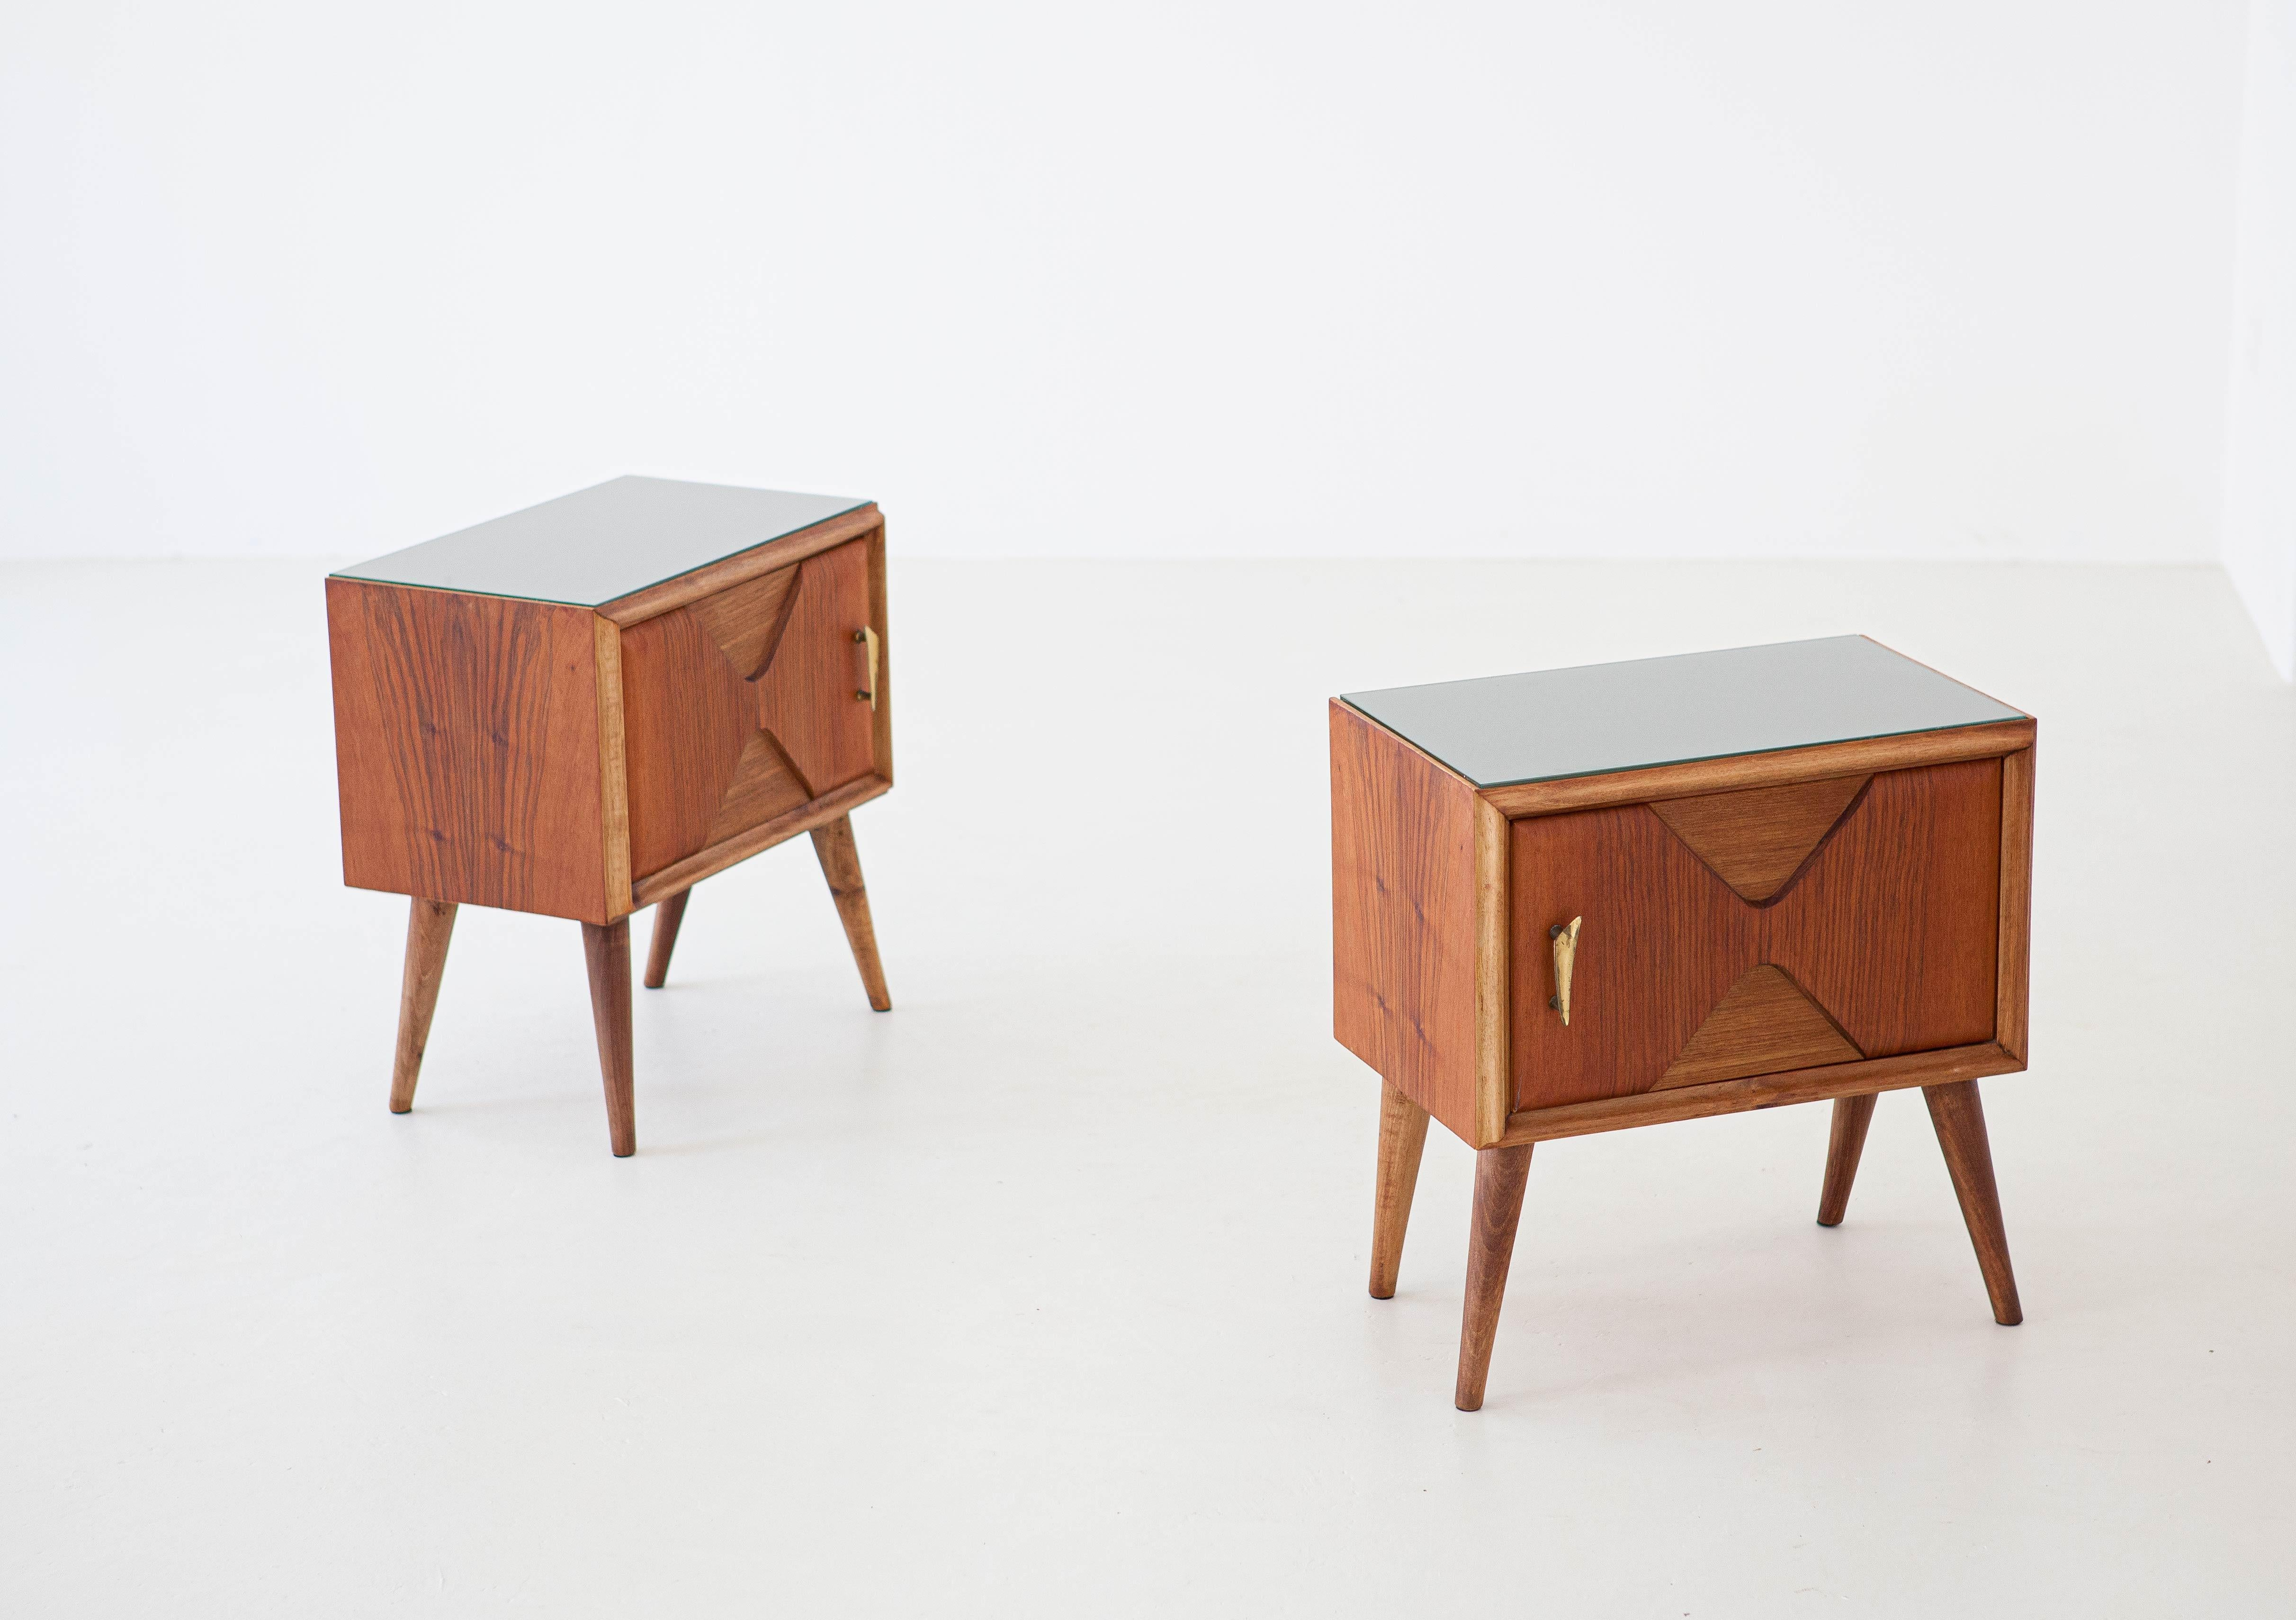 1950s Italian Modern Exotic Wood Brass And Glass Bedside